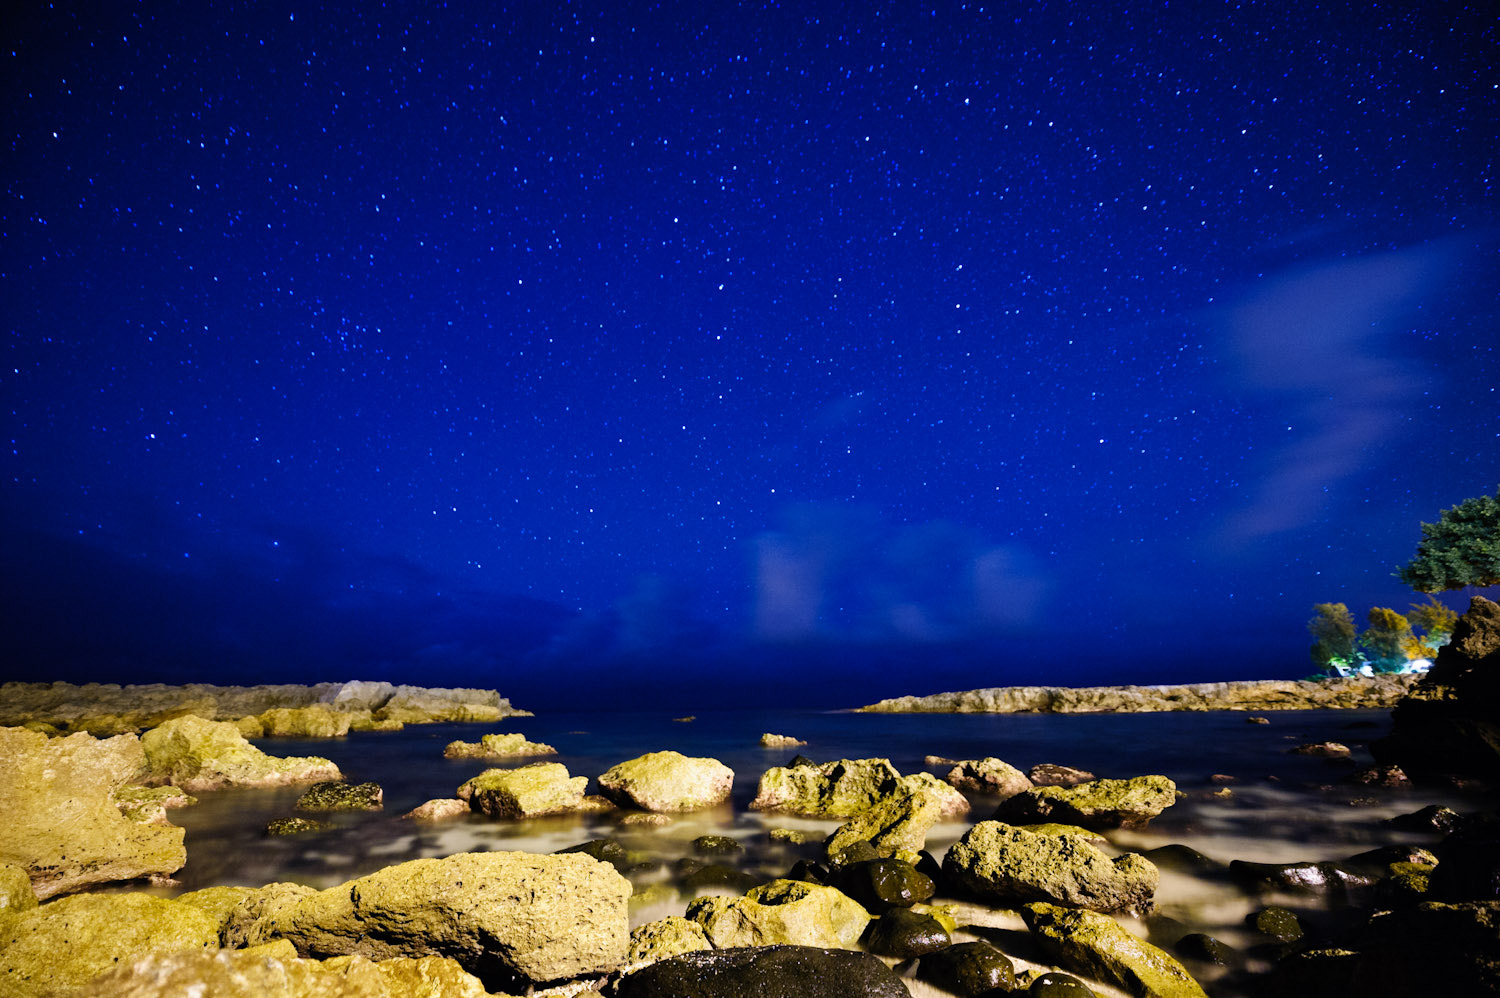 Photograph Shark's Cove by Marshall Humble on 500px